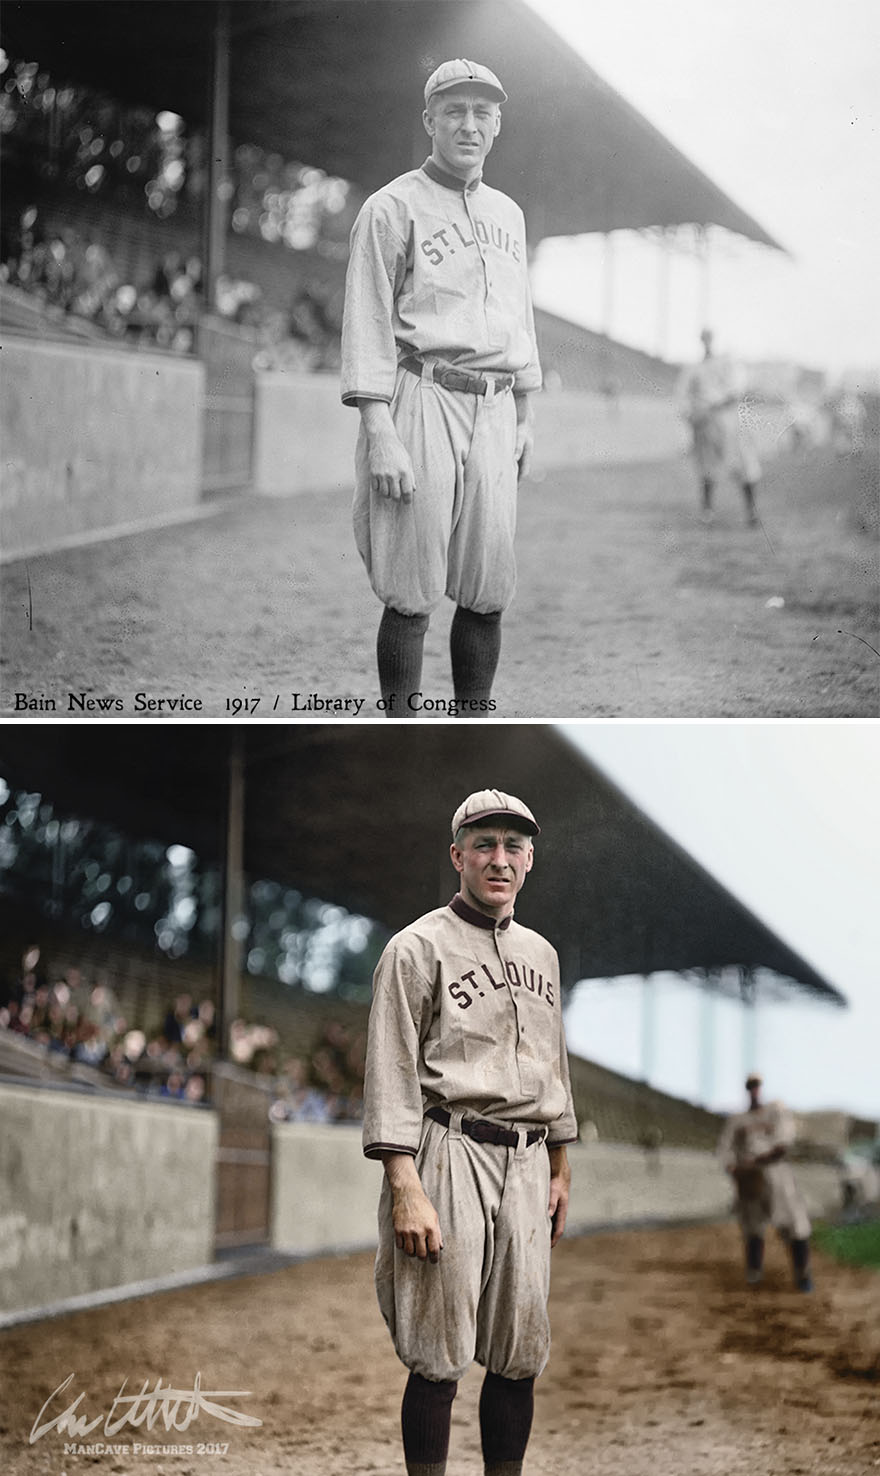 Branch Rickey. St. Louis Browns, 1914.  Rickey Was No Great Player, But He Lives In Baseball History For His Work In Breaking The Segregation Of The Major Leagues, When He Signed Jackie Robinson To The Dodgers In 1947